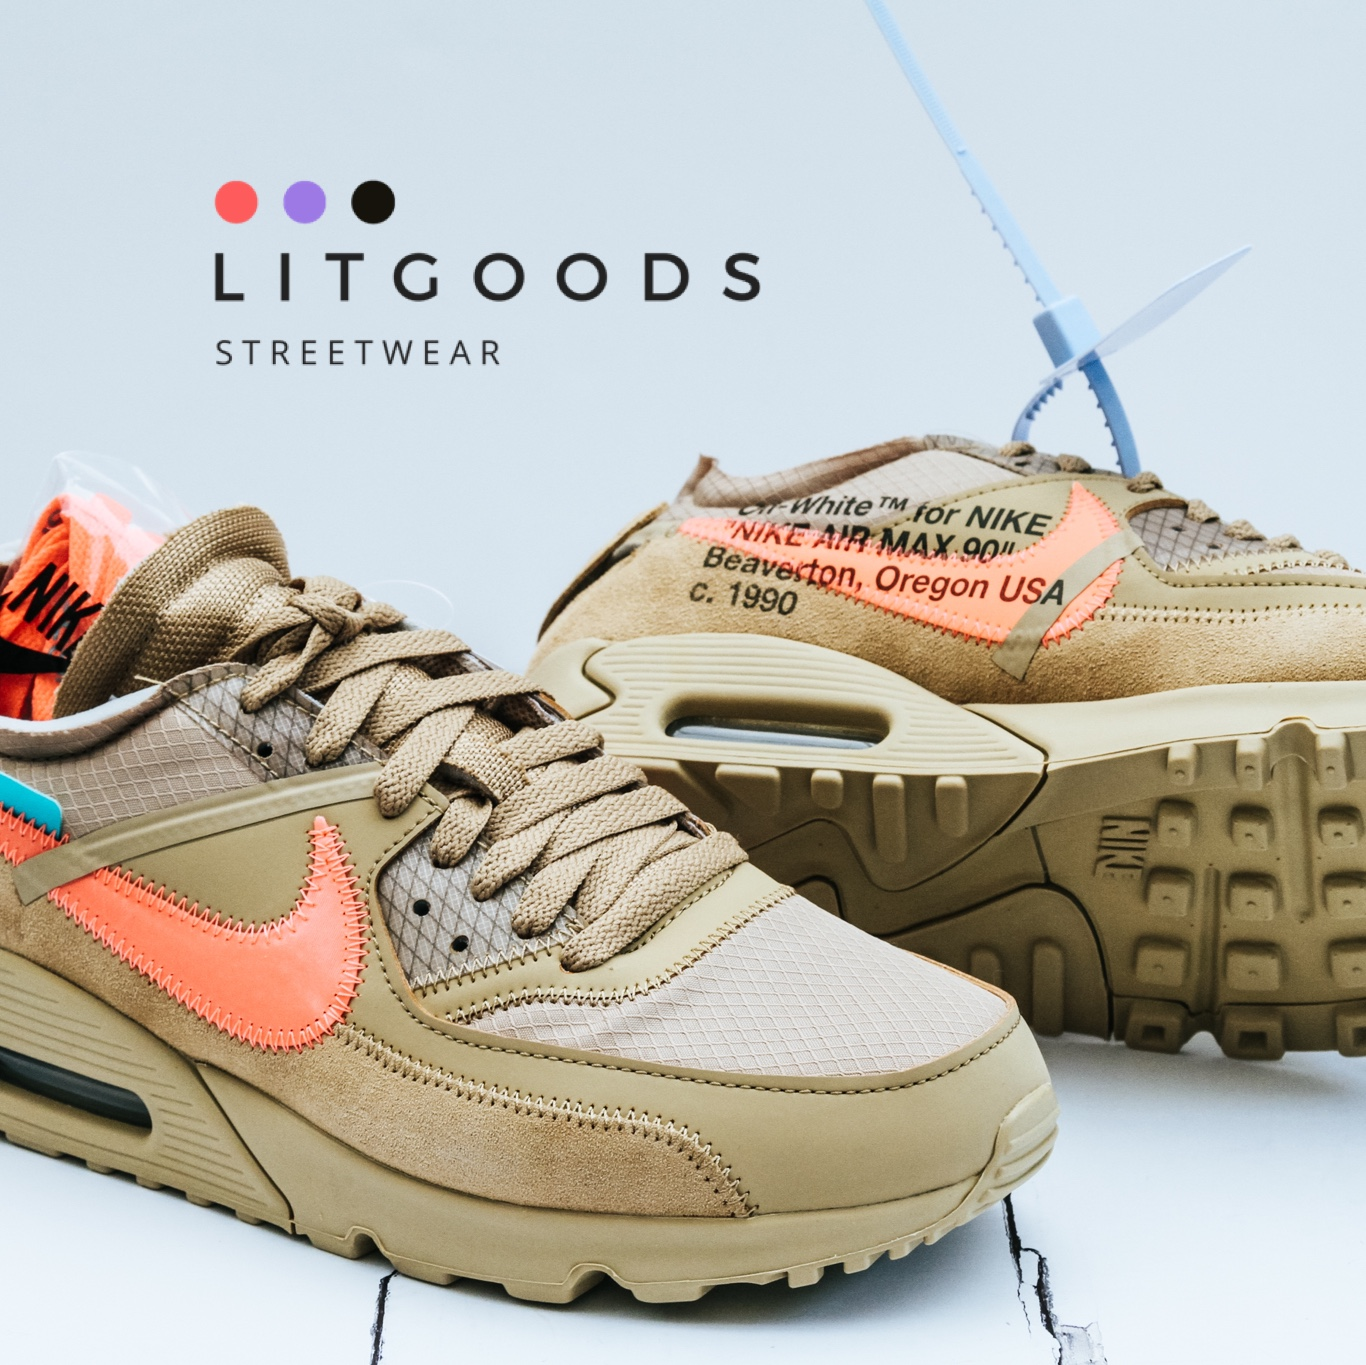 Off White x Nike Air Max 90 Desert Ore Size UK 7.5 Depop